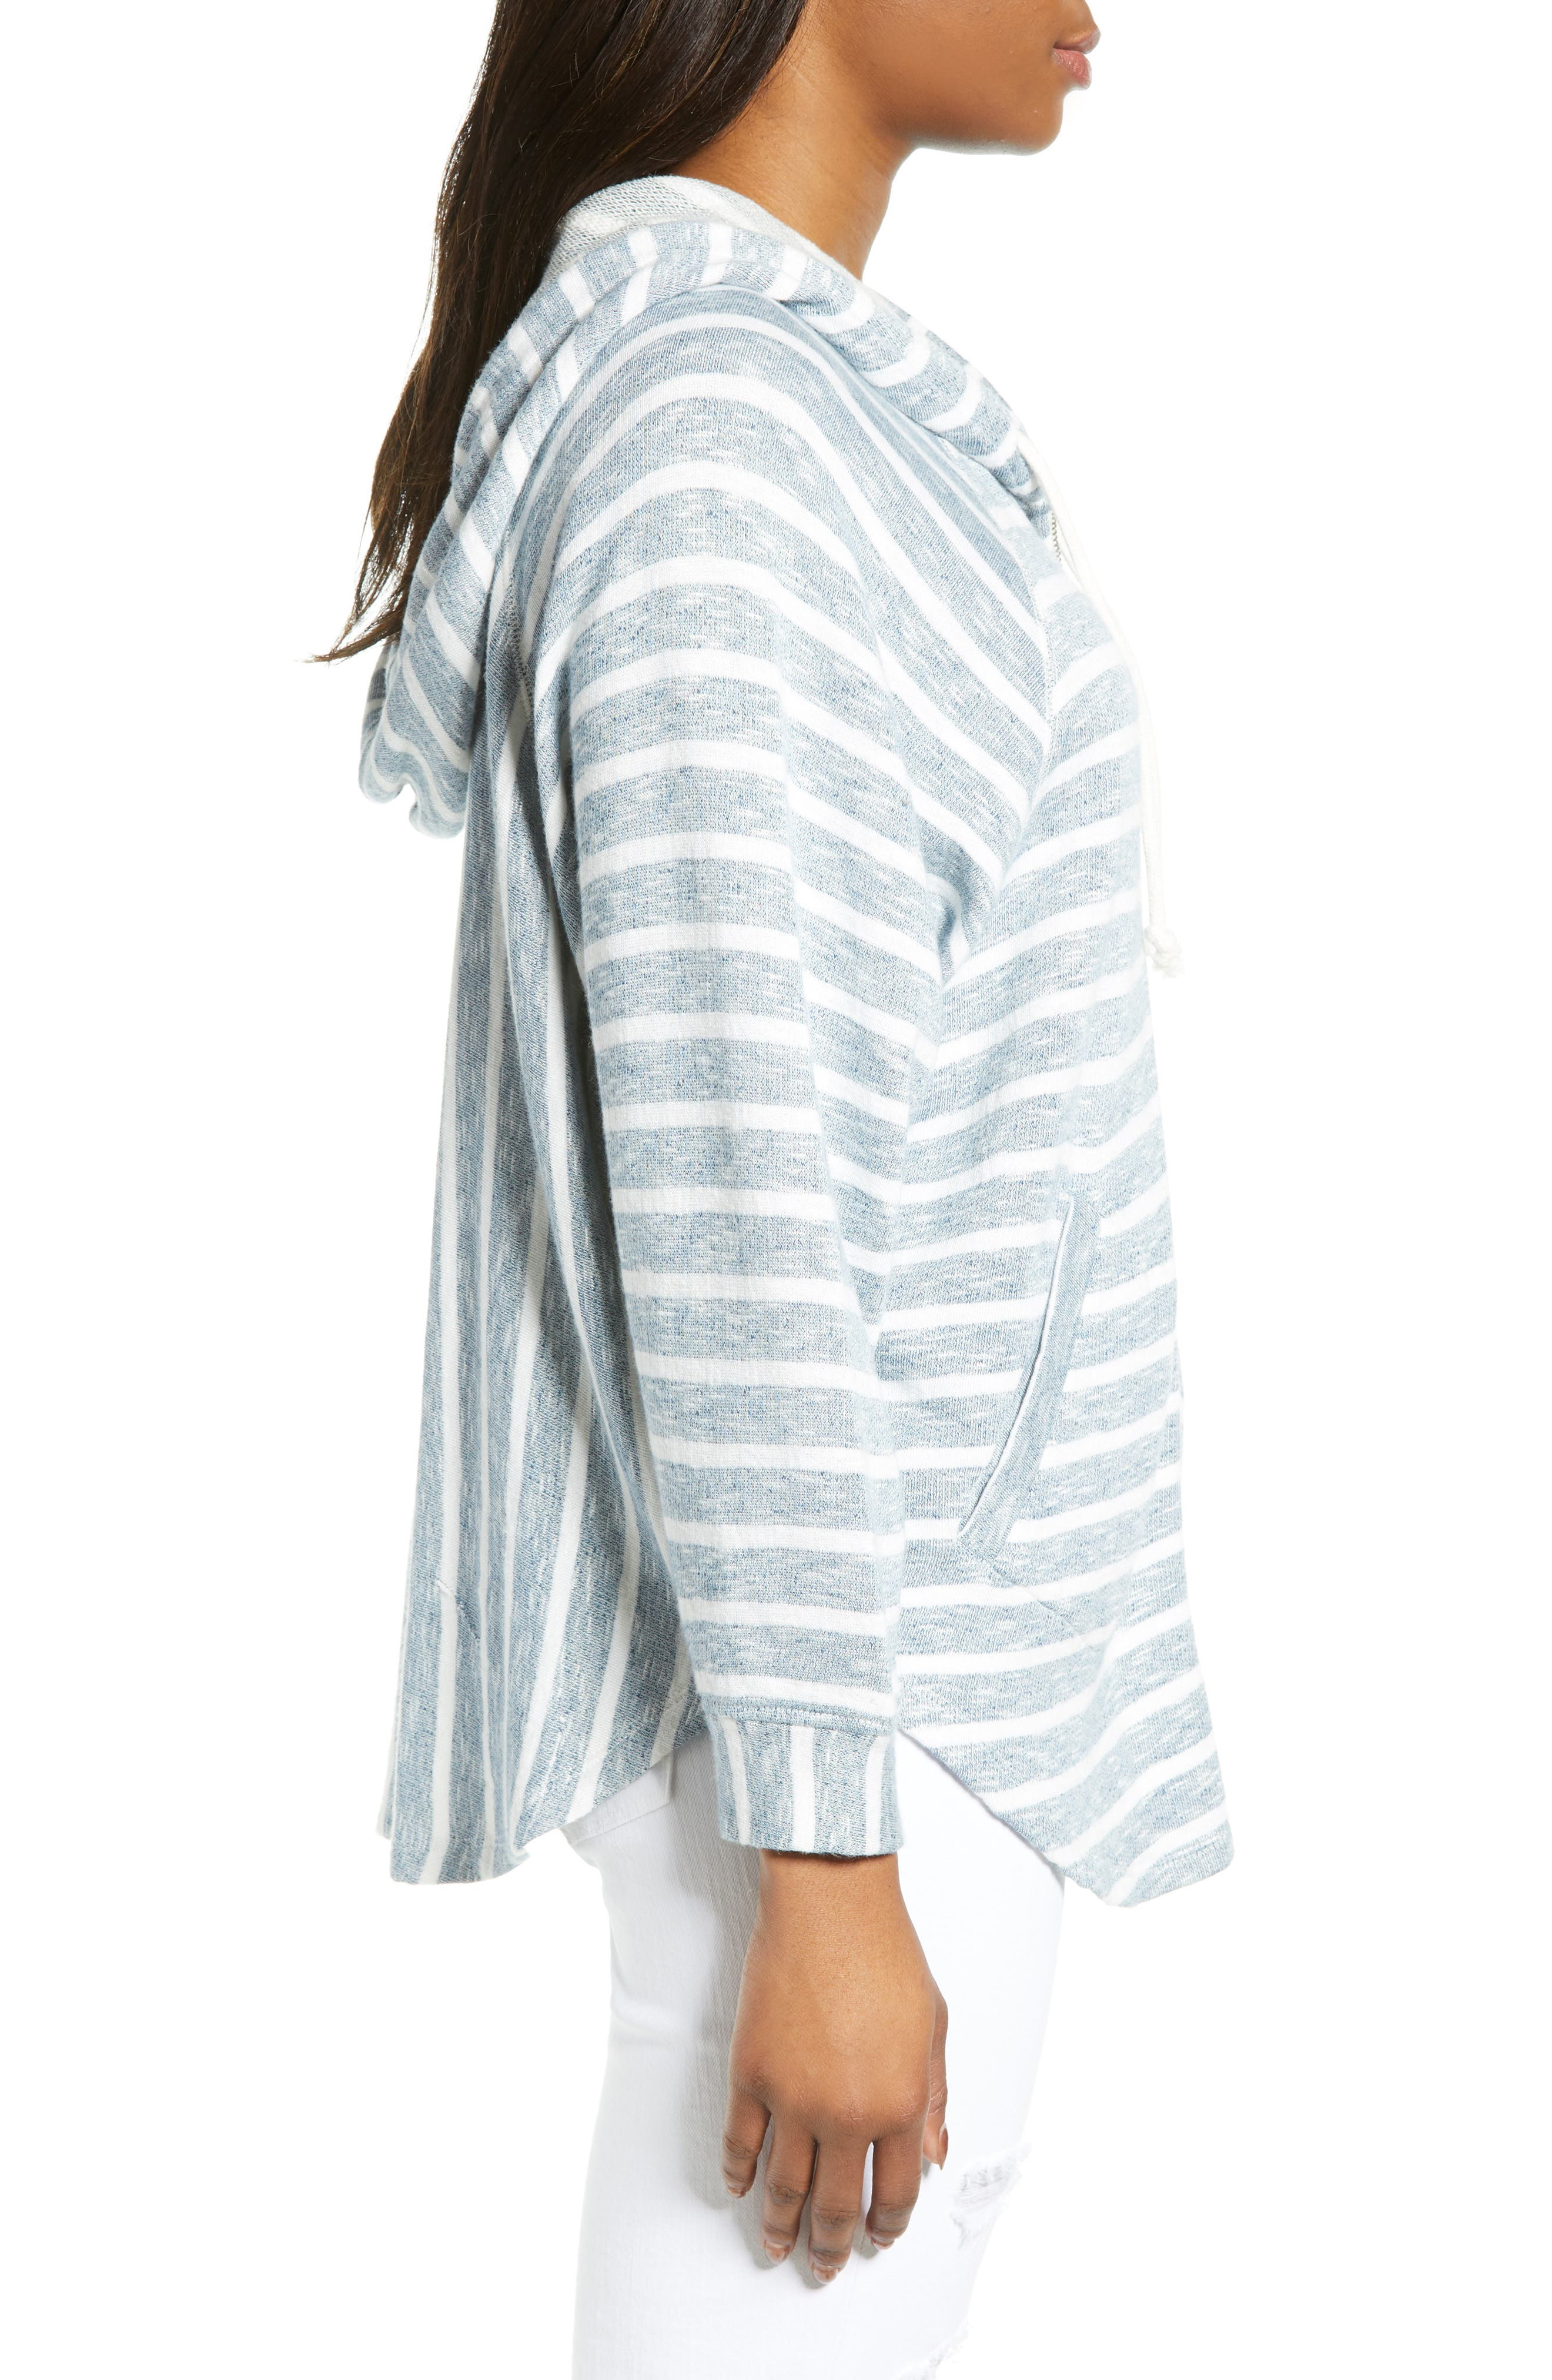 LUCKY BRAND, Striped Hooded Poncho, Alternate thumbnail 3, color, BLUE MULTI